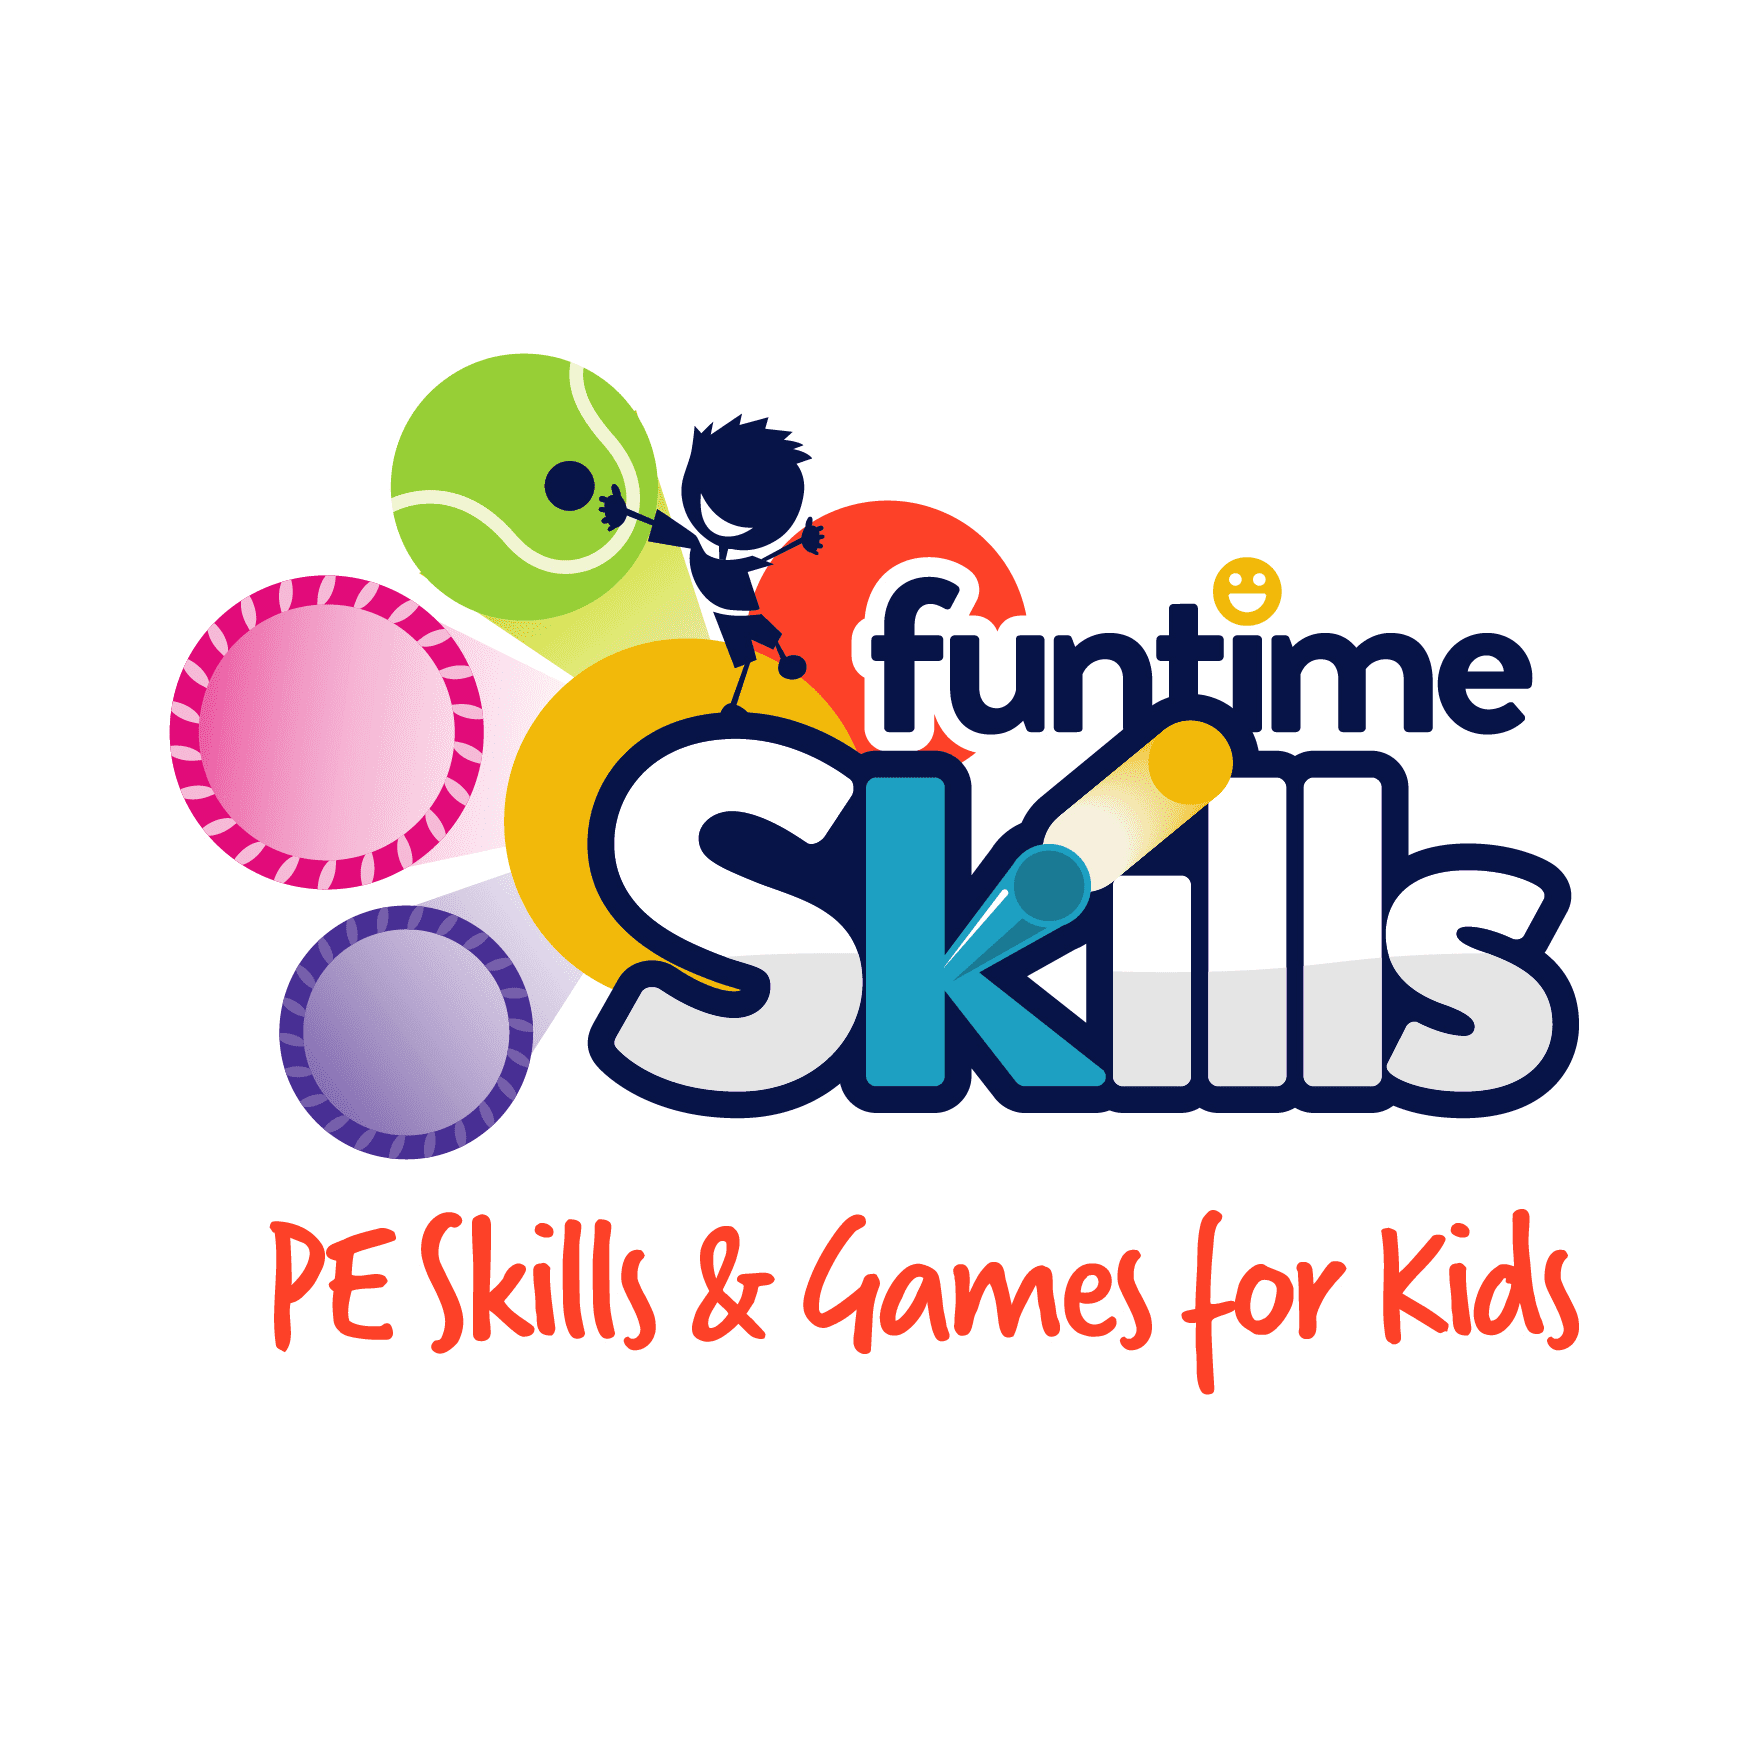 Funtime - PE Skills and Games for Kids